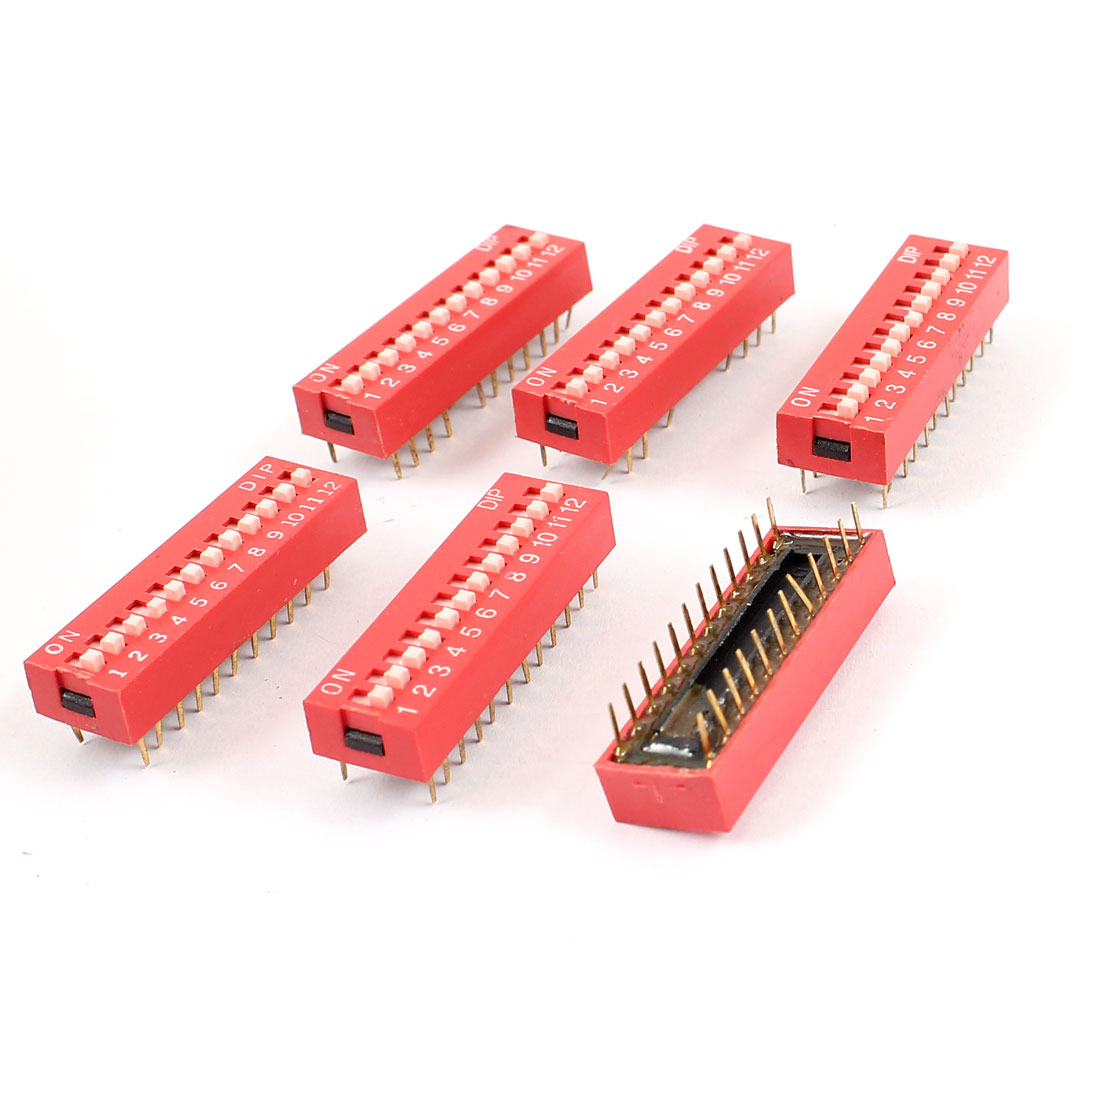 6pcs DIP Switch 24 Pins 12 Positions Sliding Switches 2.54mm Pitch